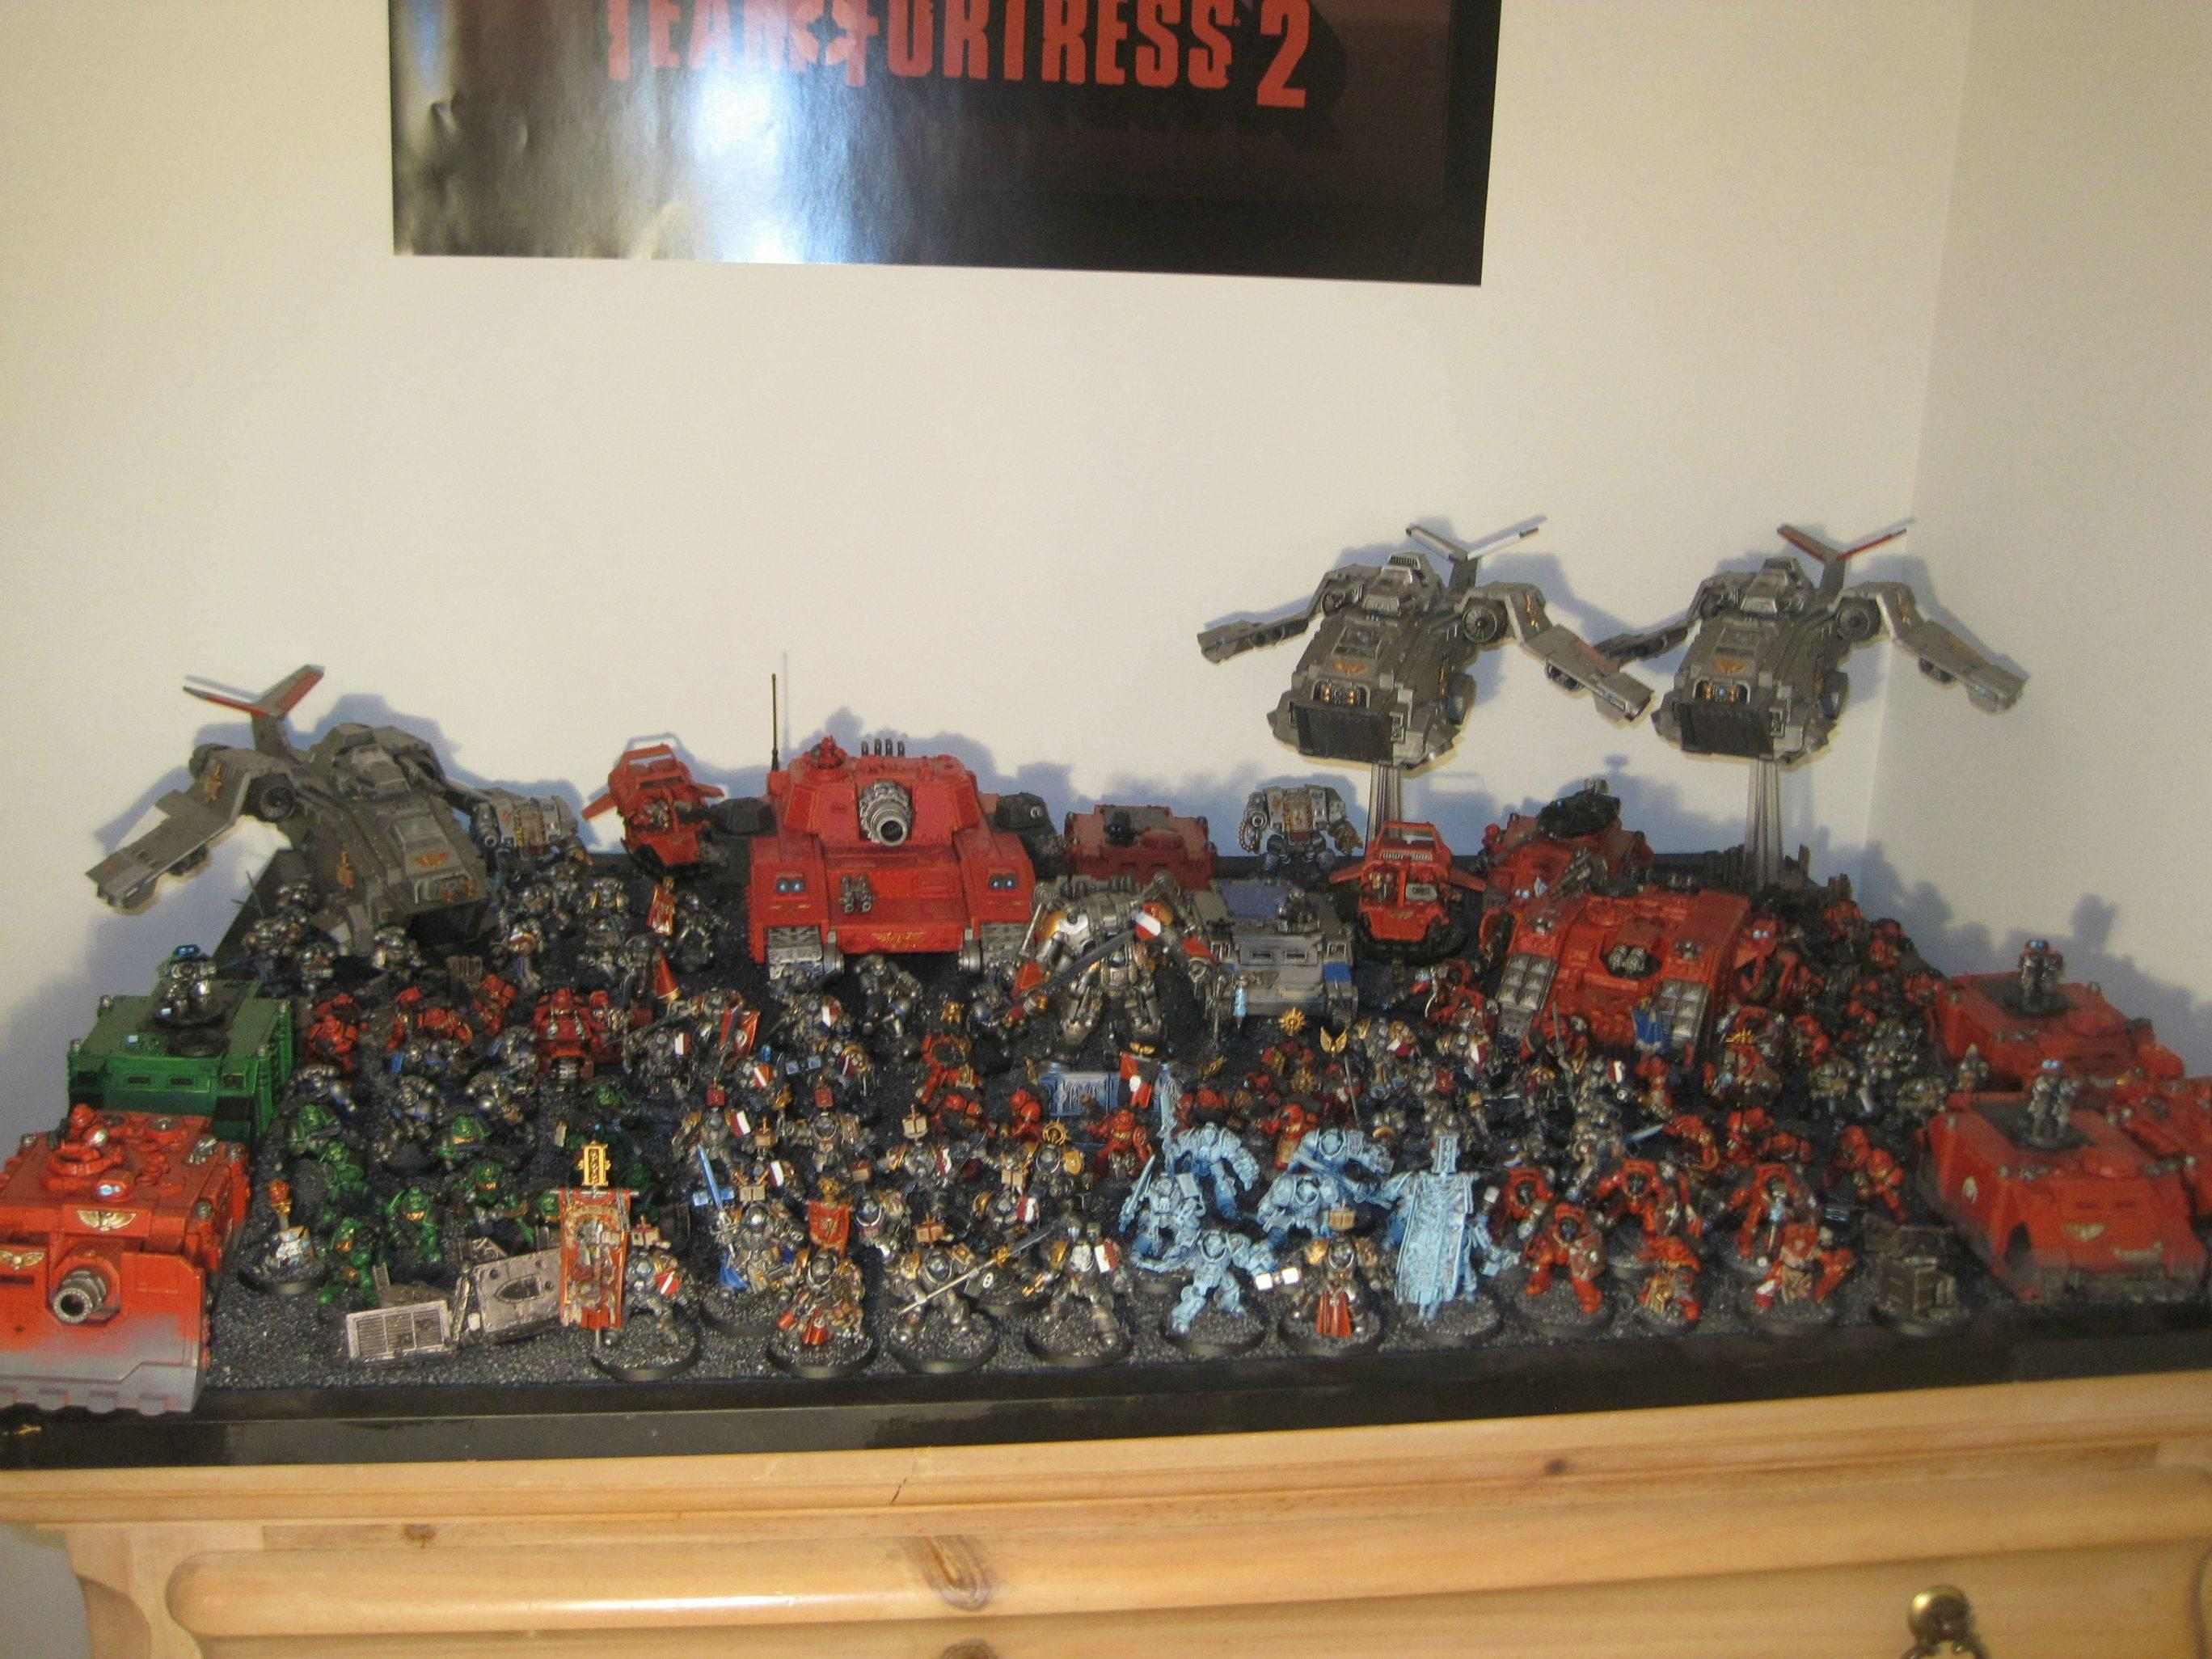 Grey Knights, Space Marines, Stormraven, Stormsword, Super-heavy, Warhammer 40,000